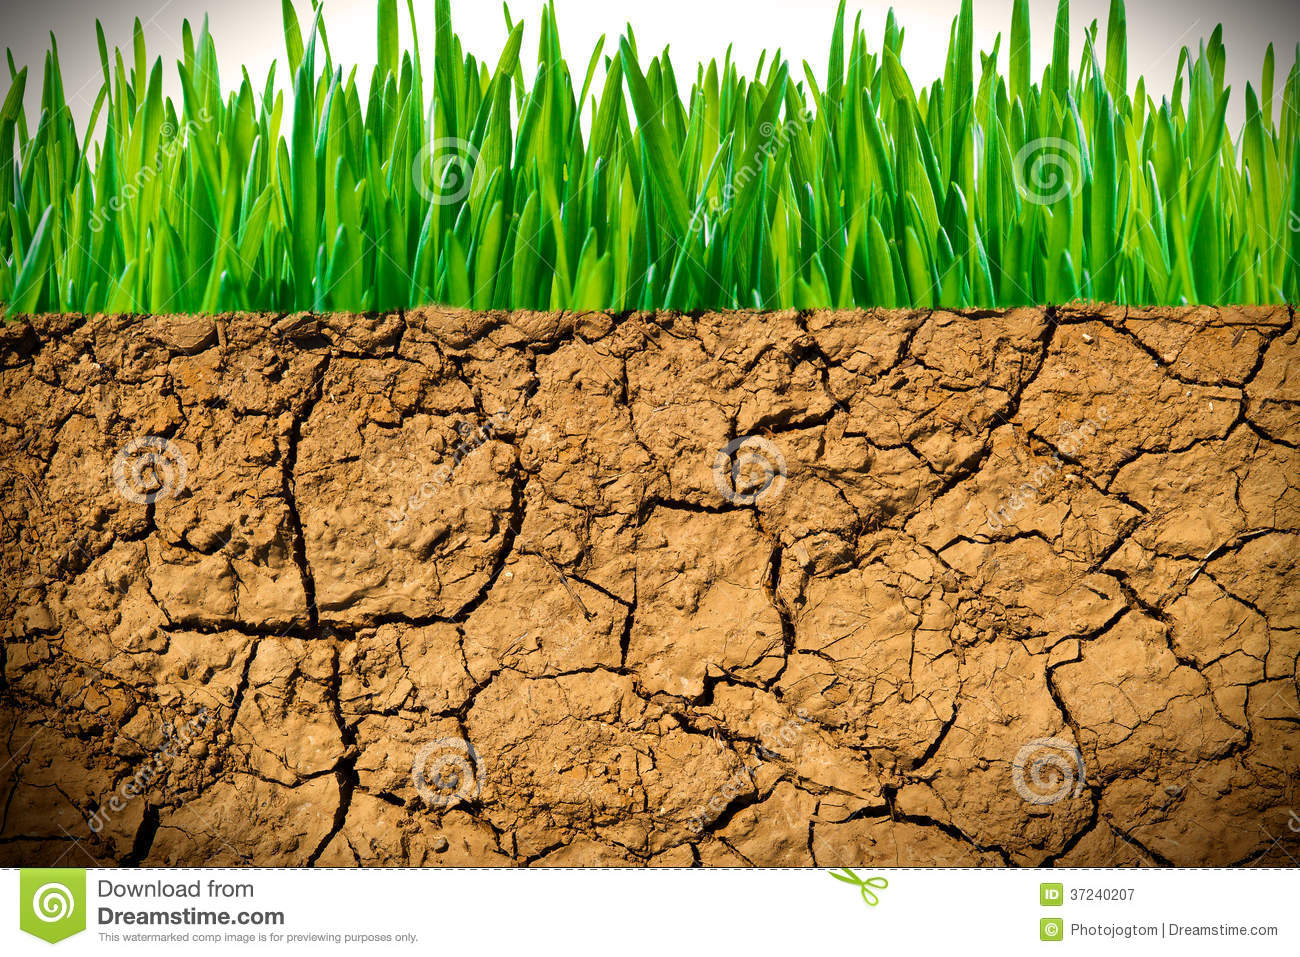 how to prepare soil for grass